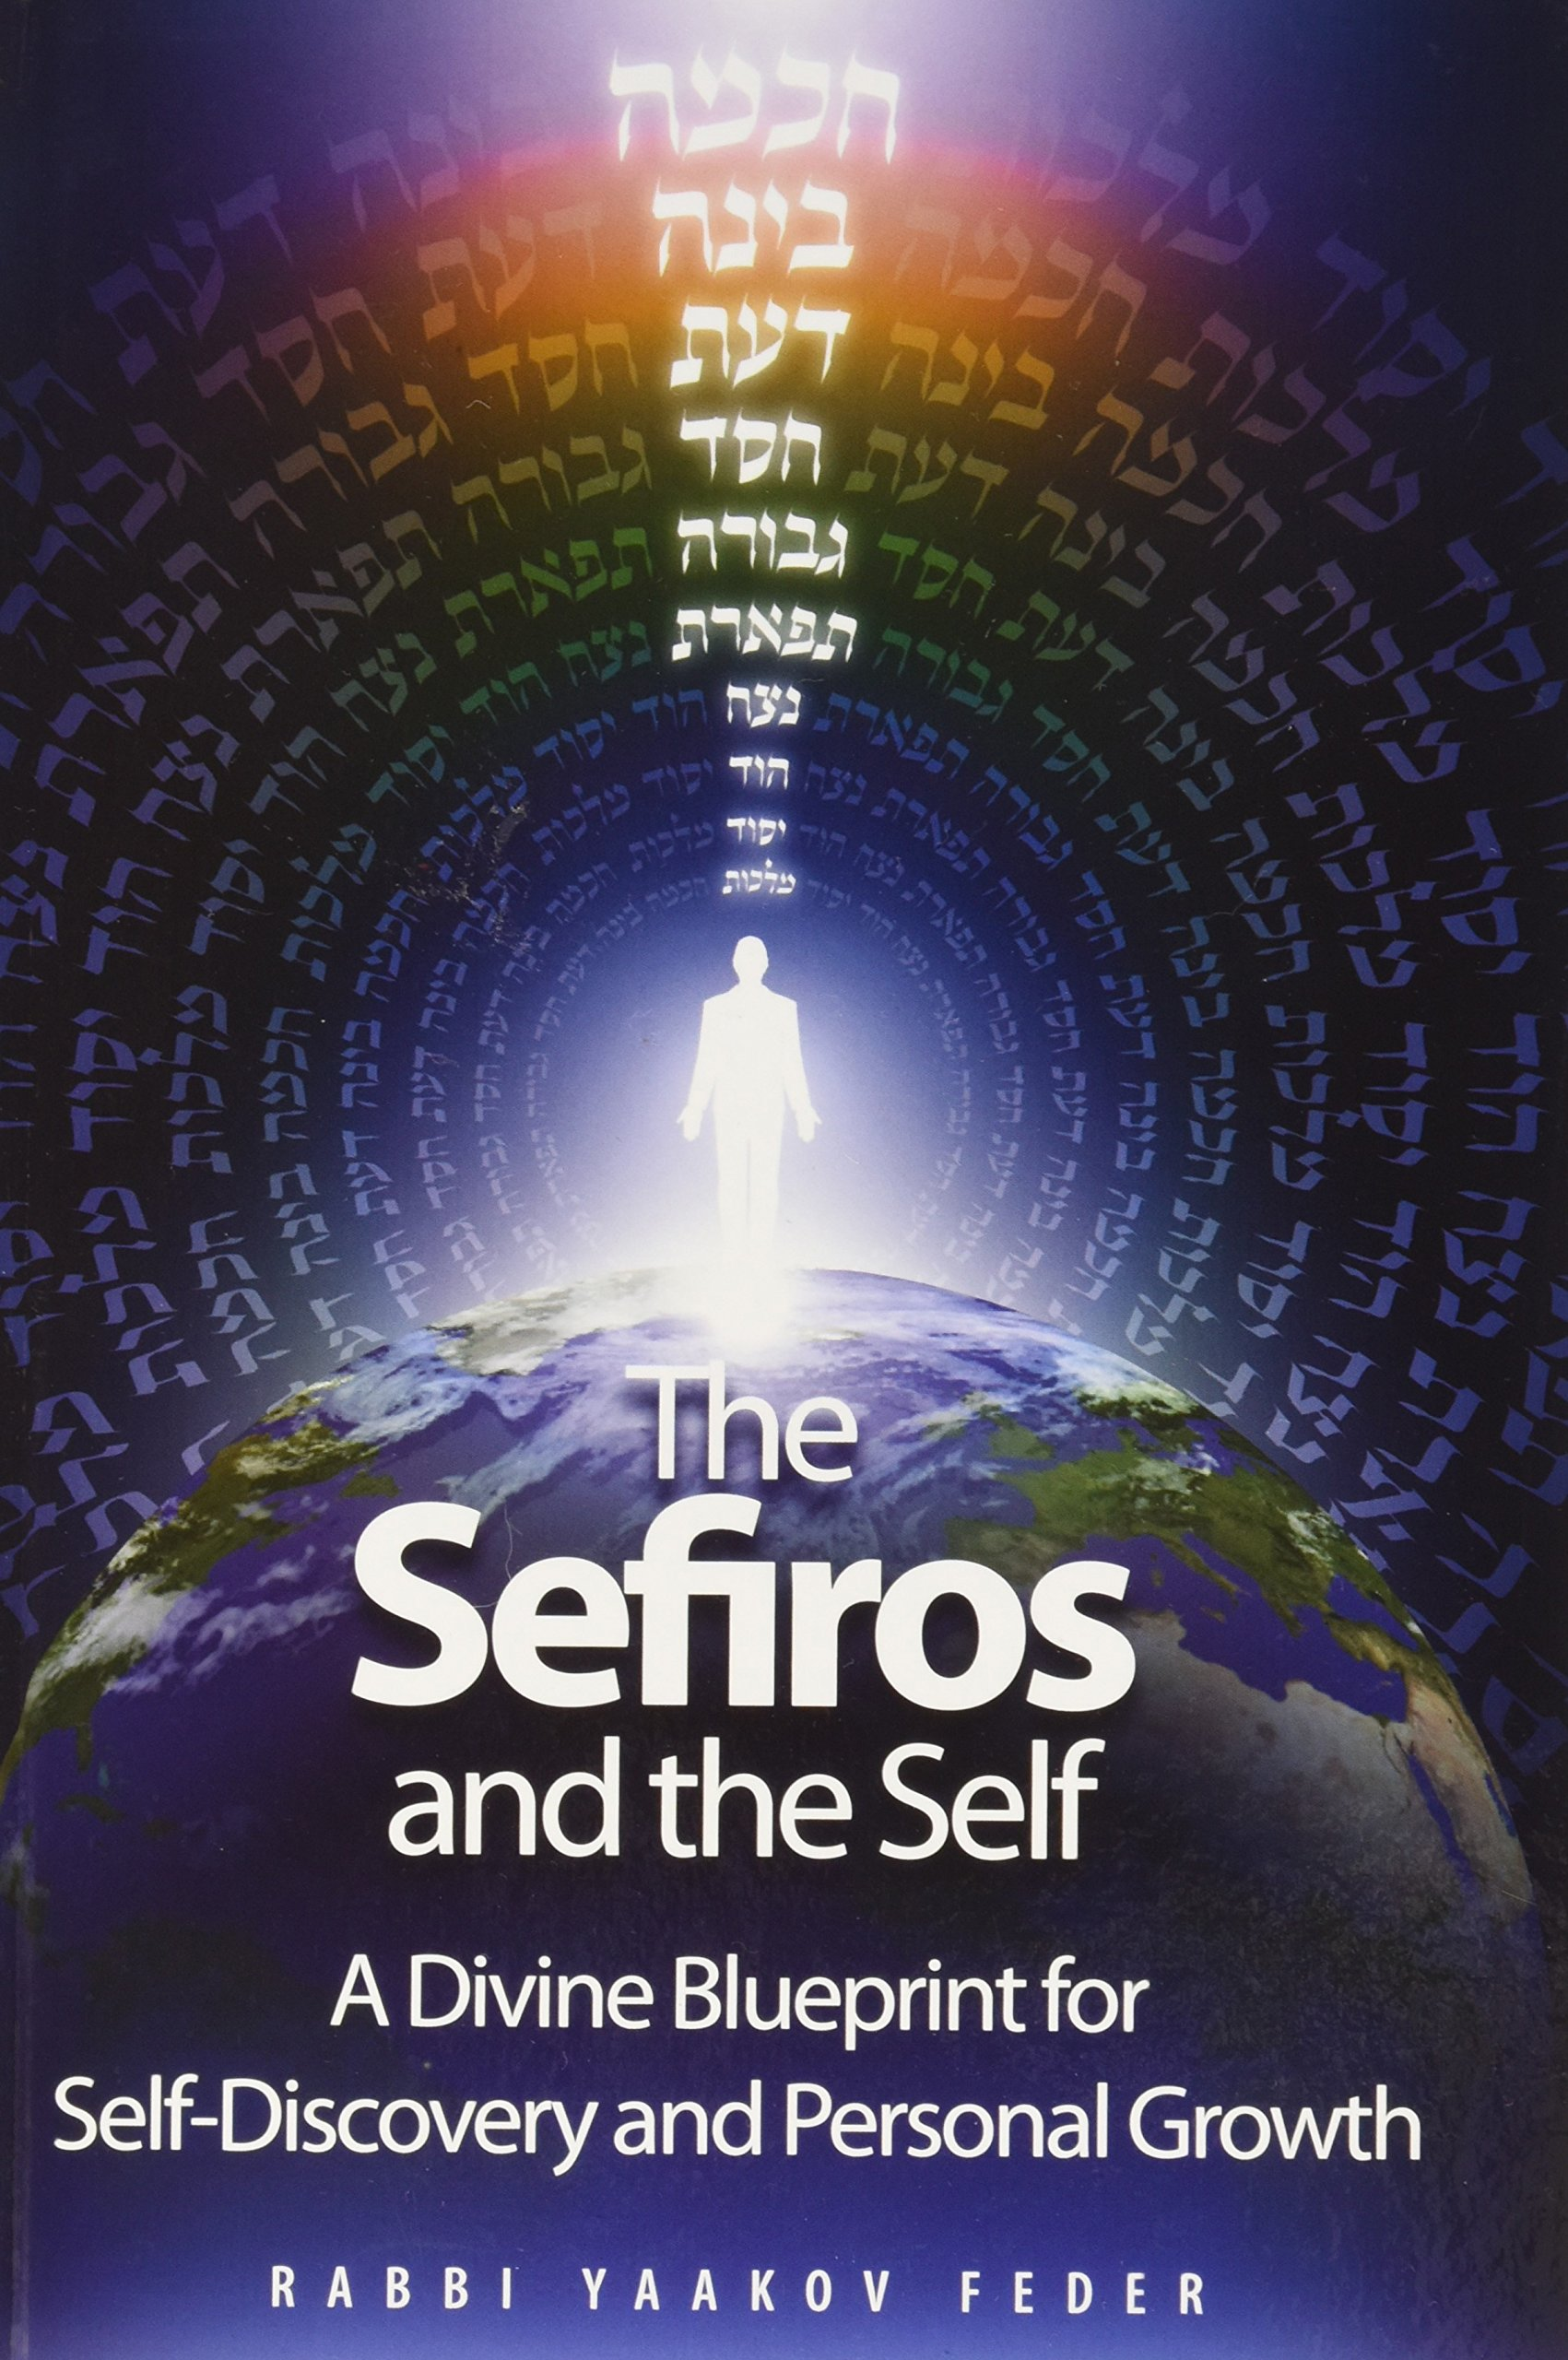 The sefiros and the self a divine blueprint for self discovery and the sefiros and the self a divine blueprint for self discovery and personal growth rabbi yaakov feder 9781680252255 amazon books malvernweather Choice Image